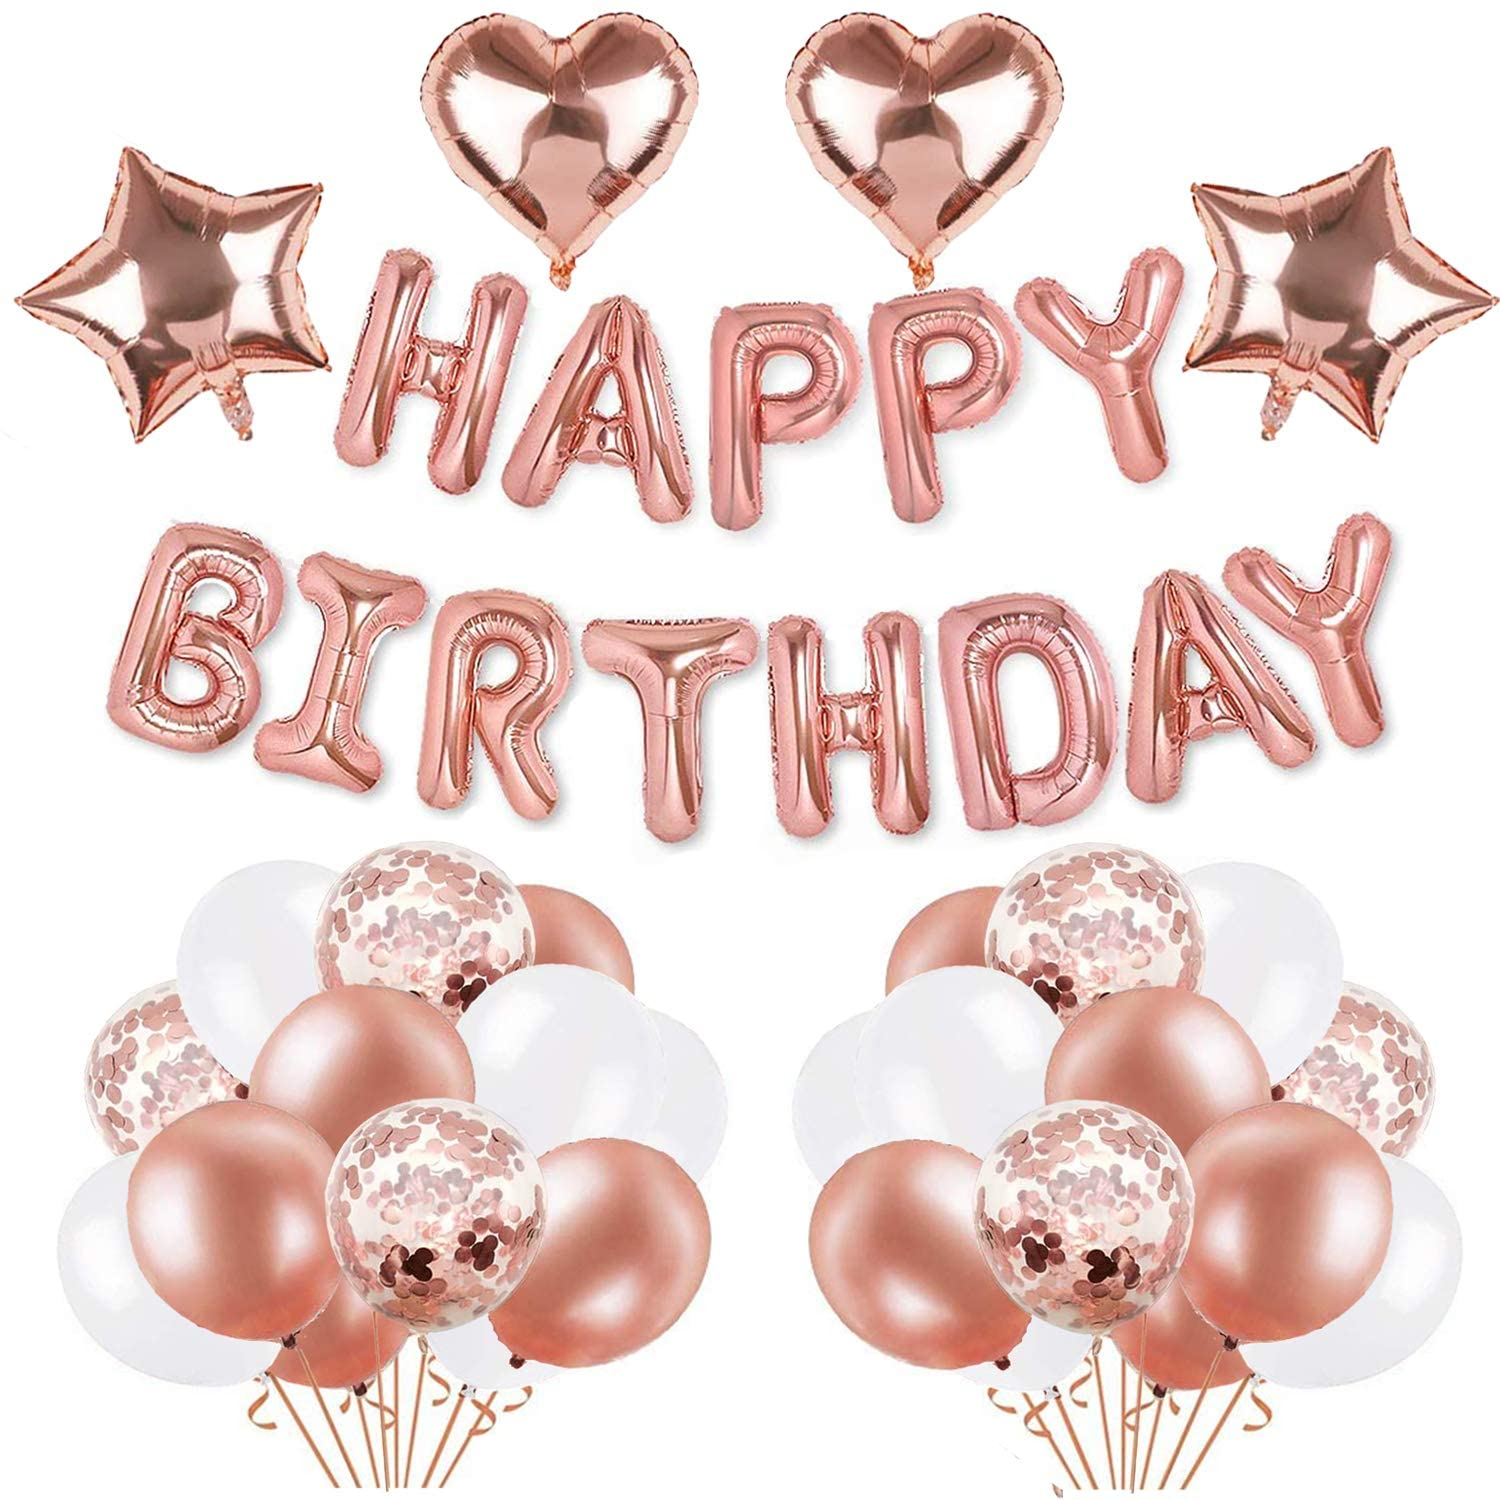 Rose Gold Birthday Party Decorations Set - with Happy Birthday Balloons Banner Rose Gold, Star and Heart Foil Balloons, Latex and Confetti Balloons for Women Girls Mom Ladies Birthday Party Supplies